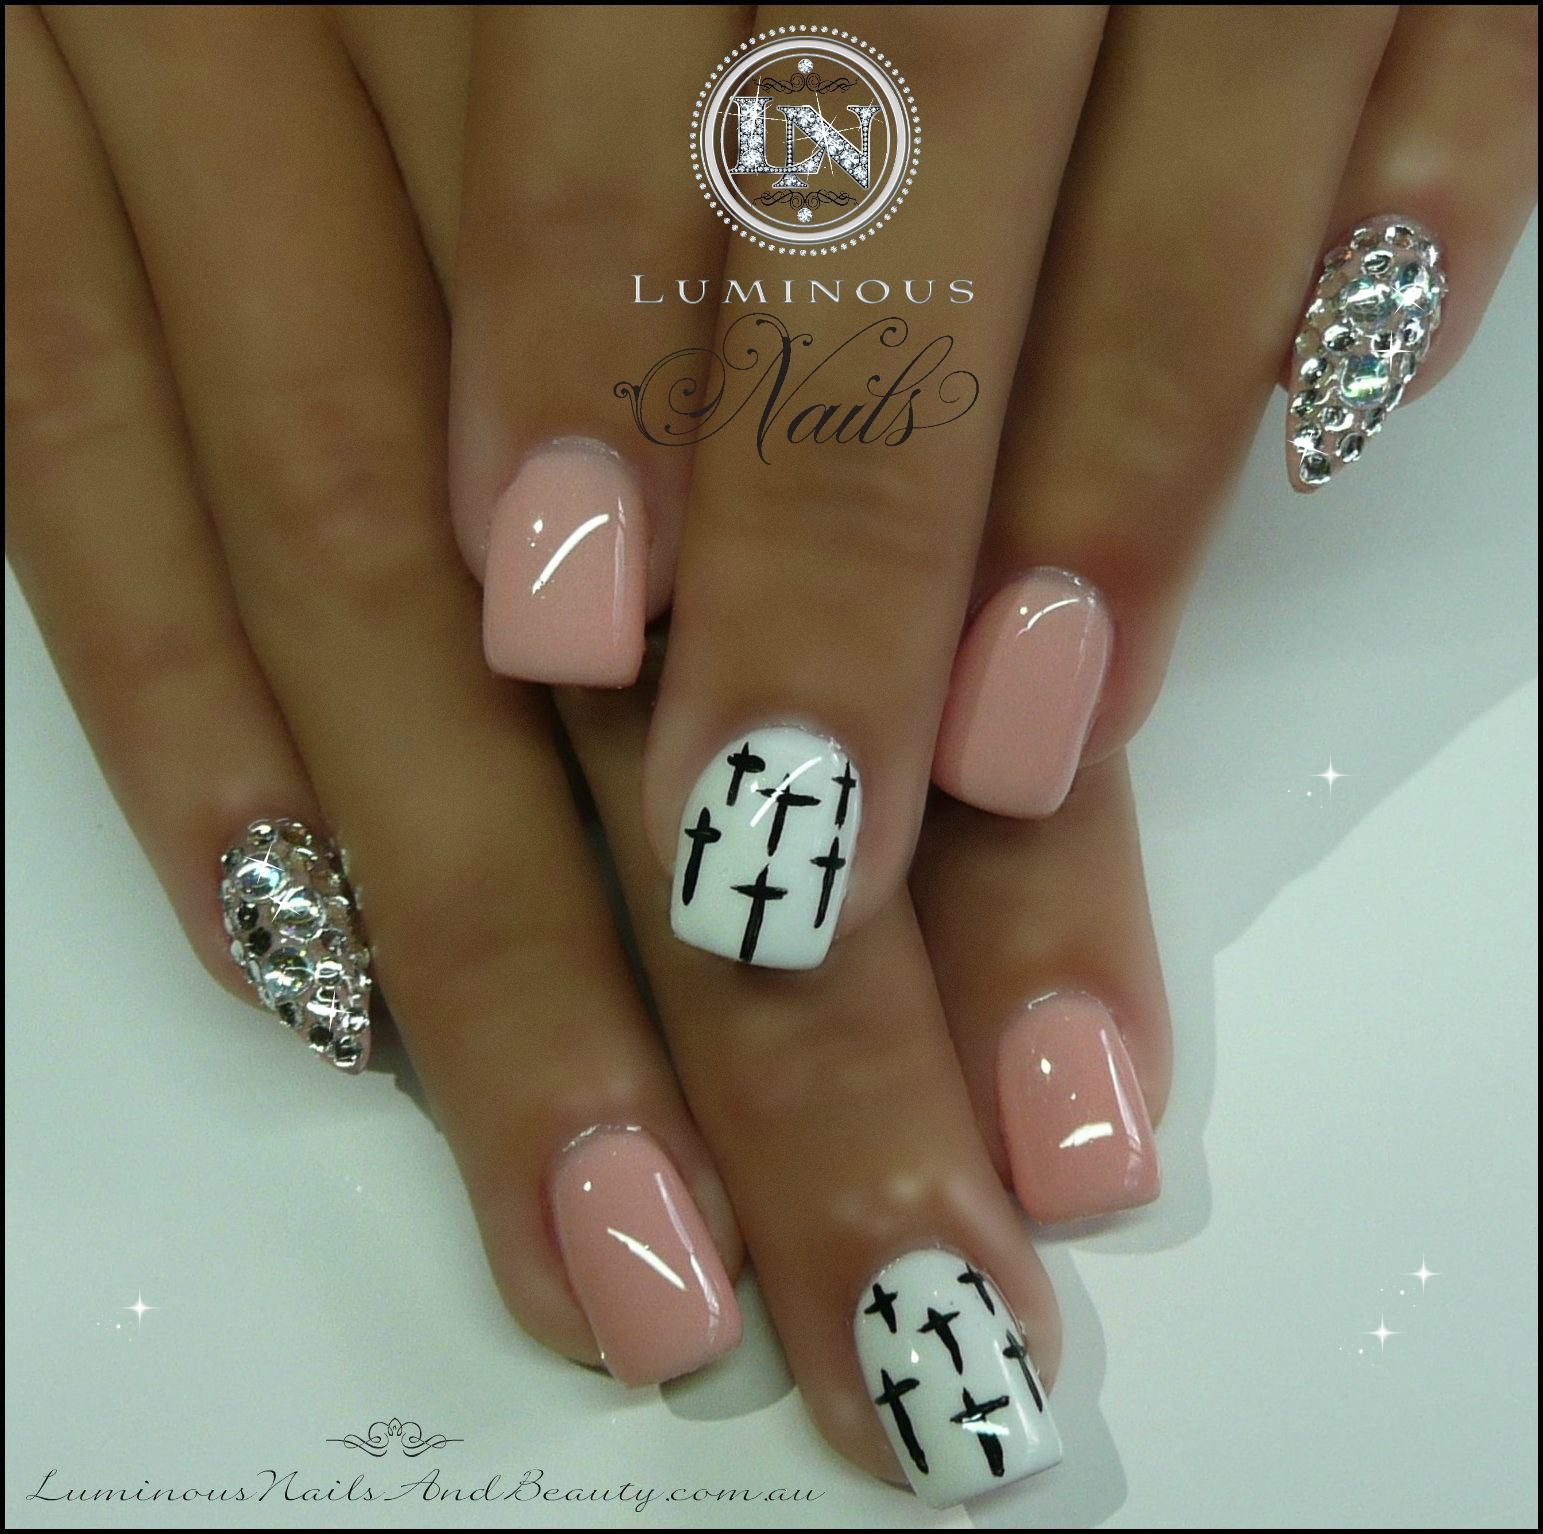 Crystal Gel Nail Video: Luminous Nails: Nude Pink Nails With Crystal Pointy Pinkie